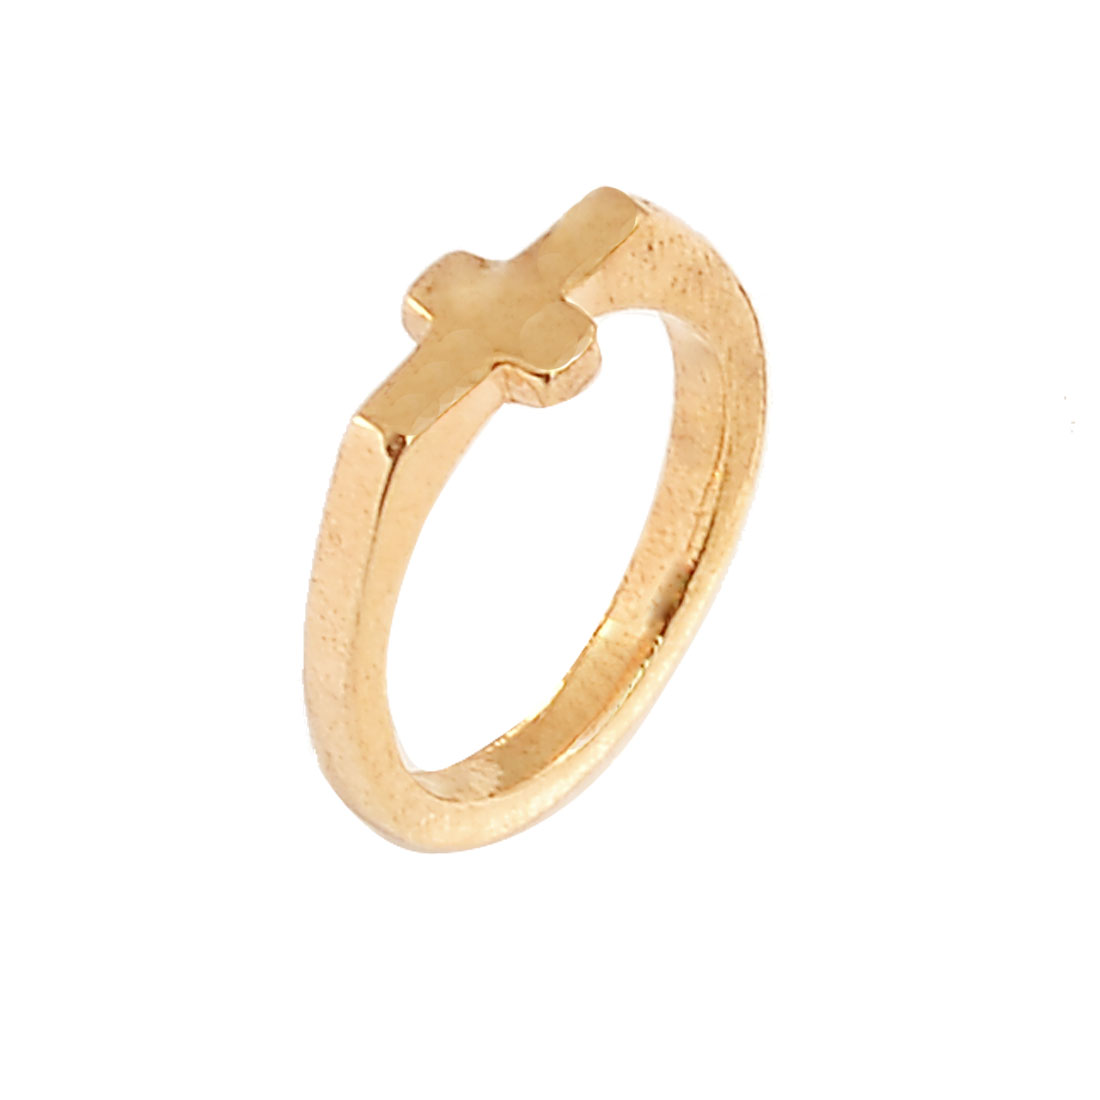 Women Jewelry Cross Detail Gold Tone Metal Finger Ring US 6